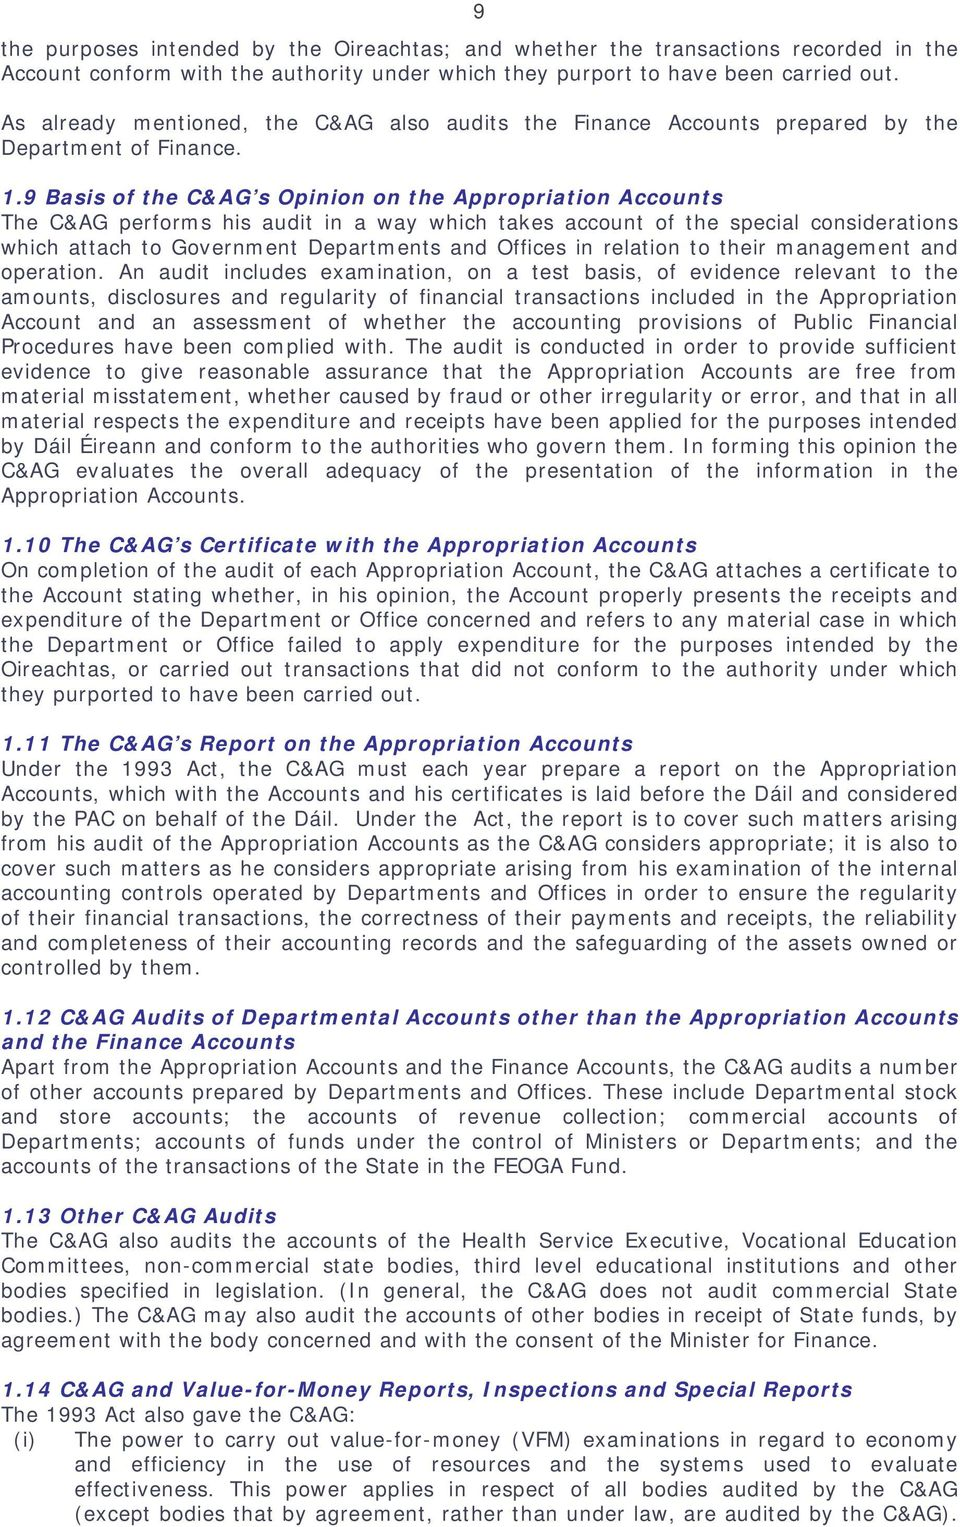 9 Basis of the C&AG s Opinion on the Appropriation Accounts The C&AG performs his audit in a way which takes account of the special considerations which attach to Government Departments and Offices